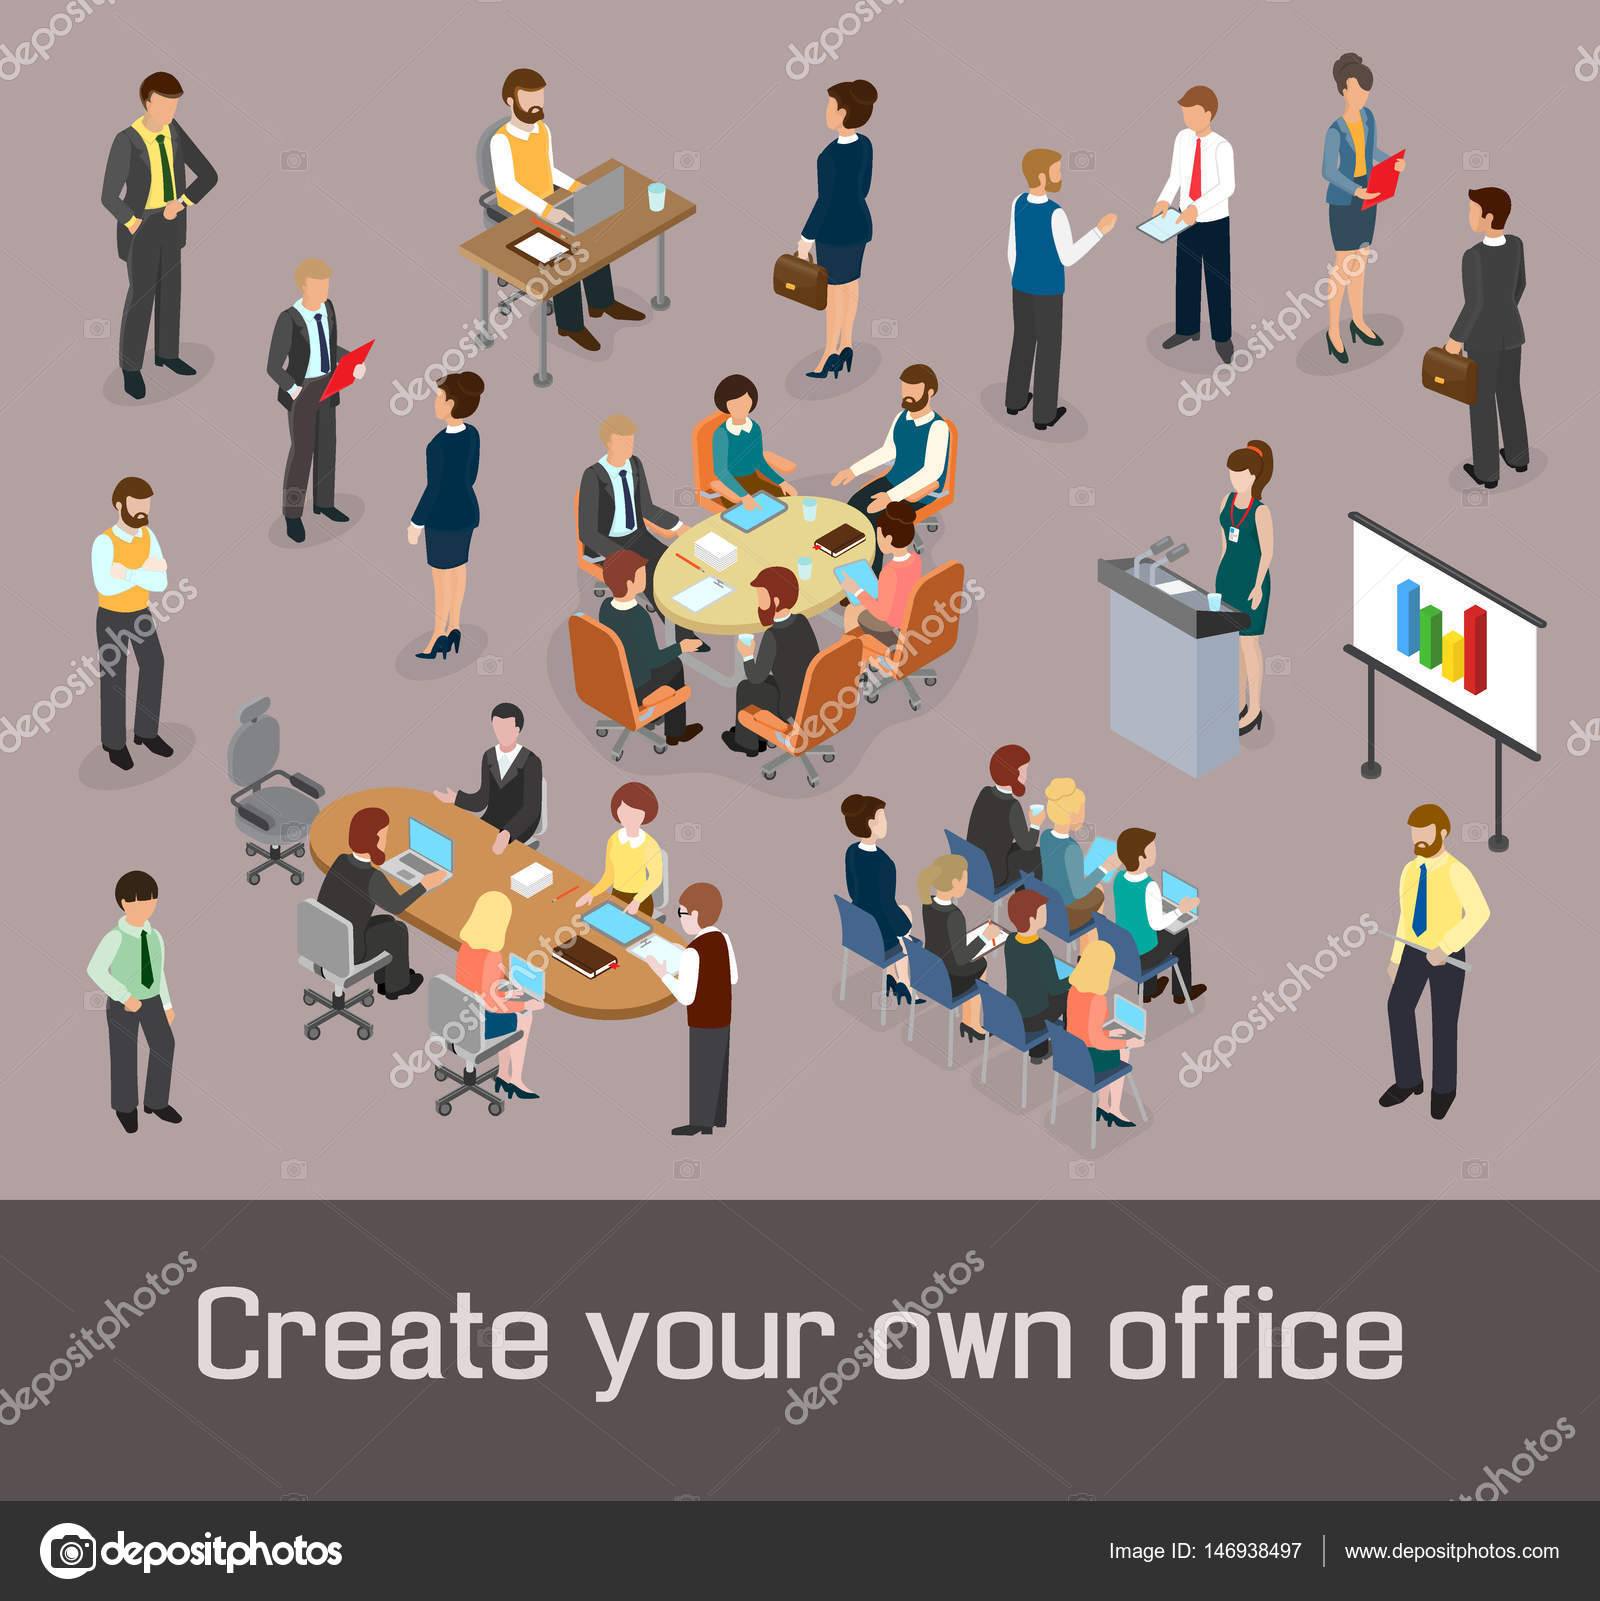 Alisarut 146938497 for Design your own office